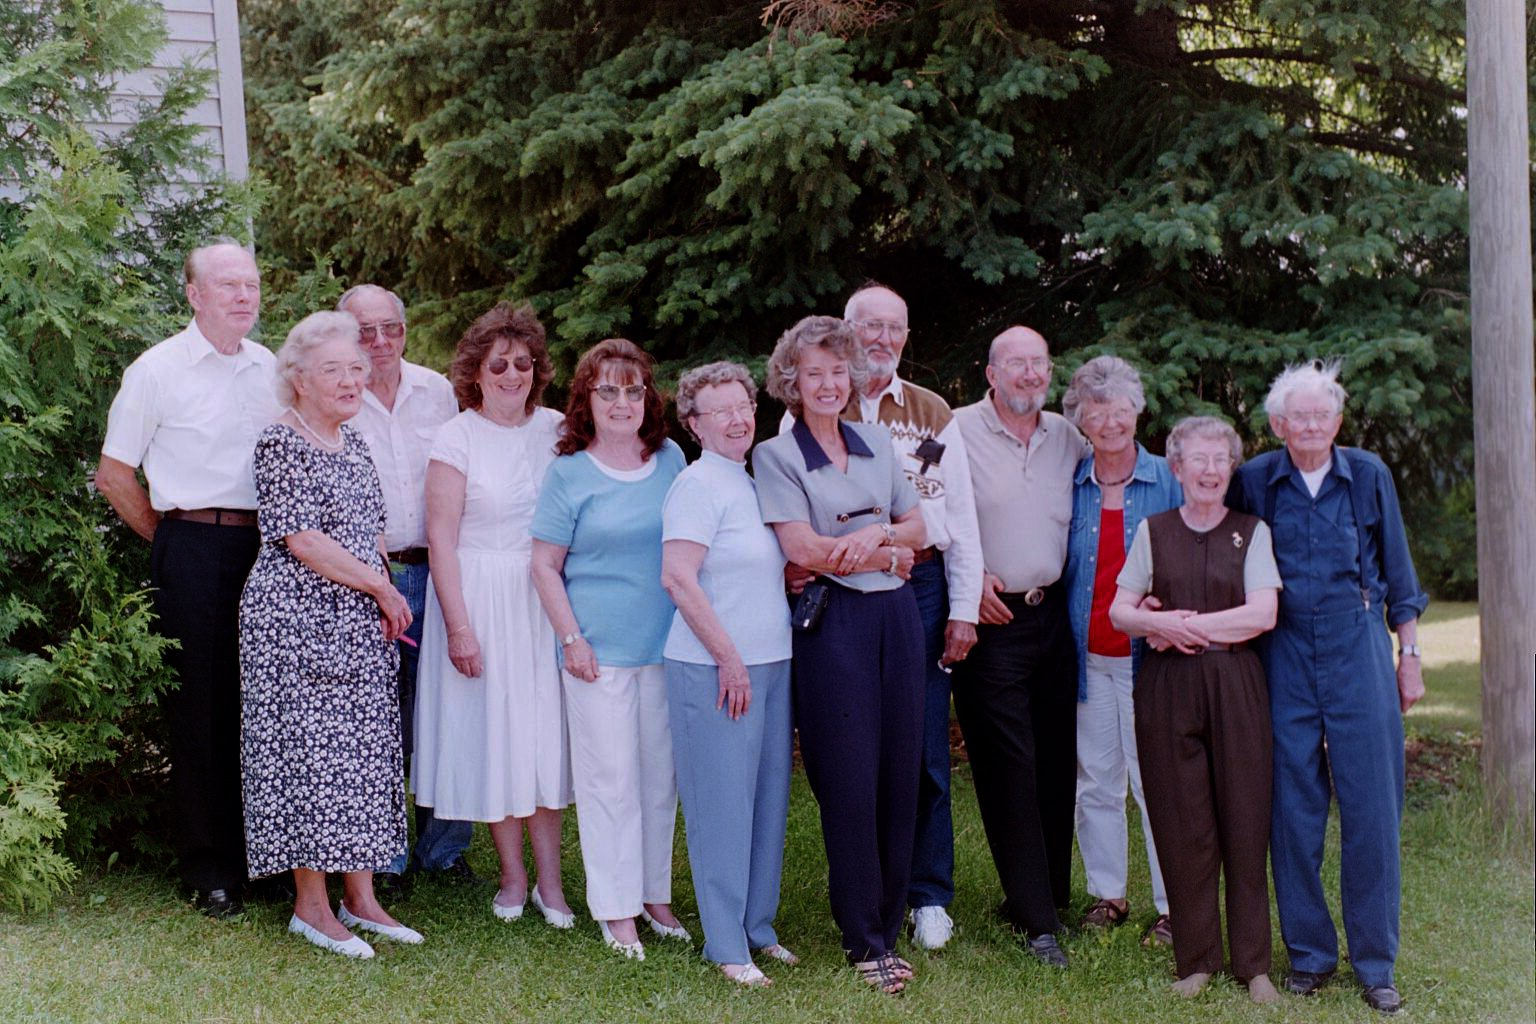 Stenoien Reunion – June 10, 2000